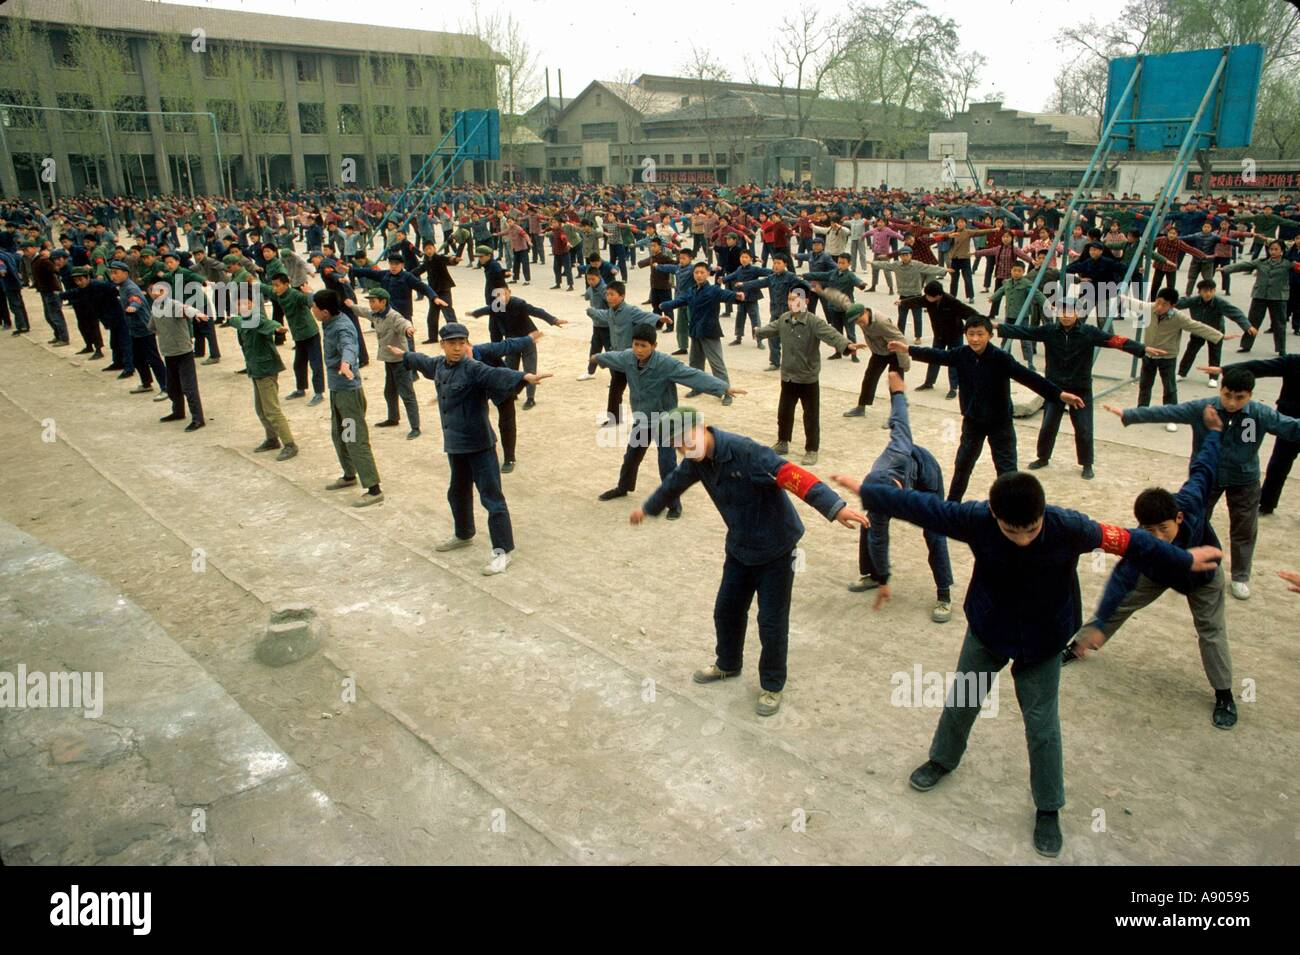 China during the Cultural Revolution Middle school students exercising outdoors - Stock Image